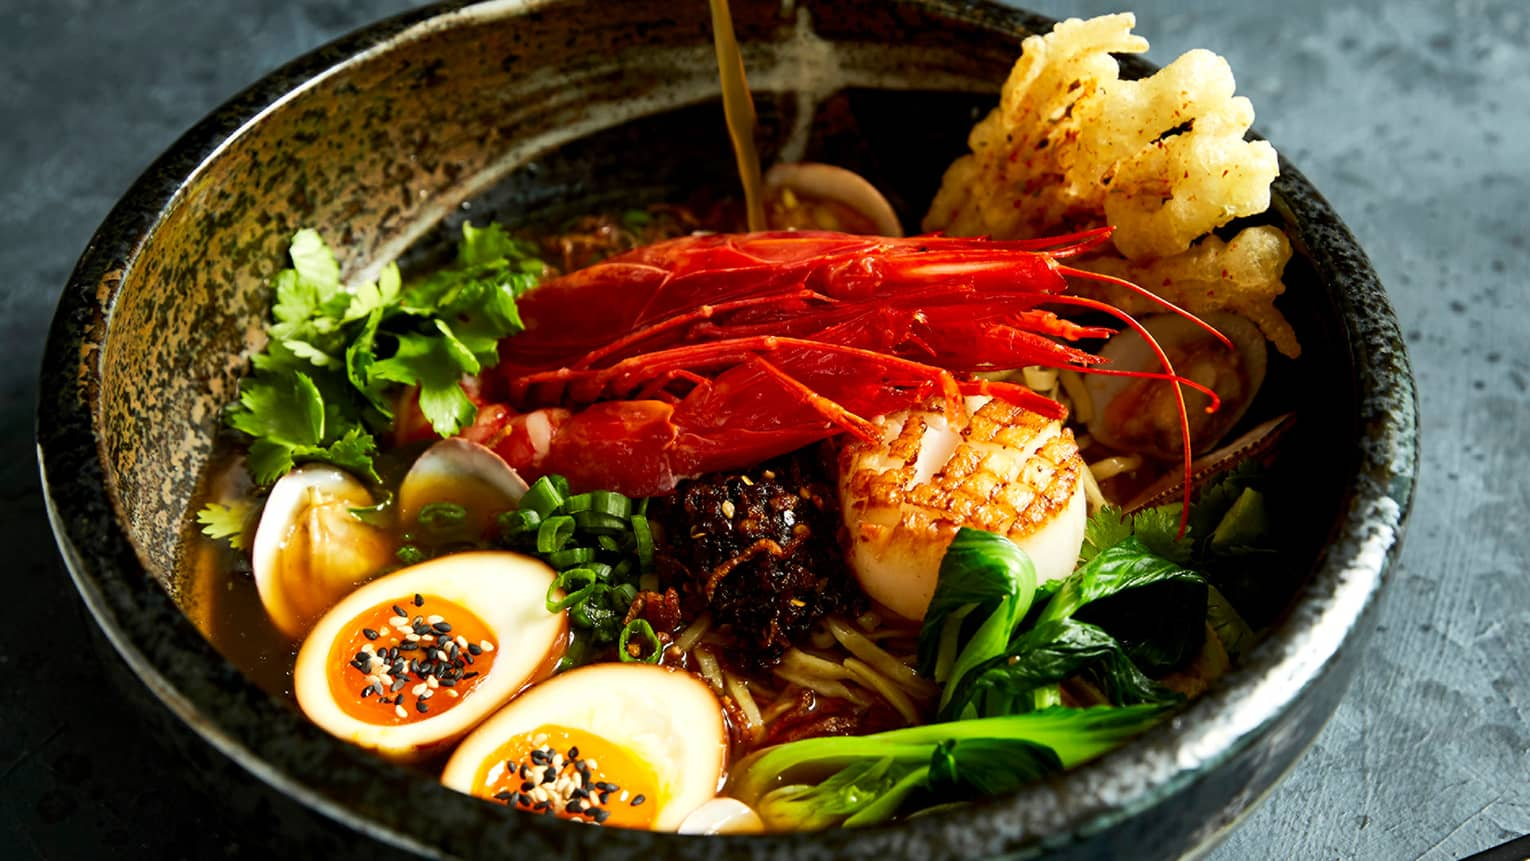 A brass bowl holding poached eggs, lobster claws, scallions and greens